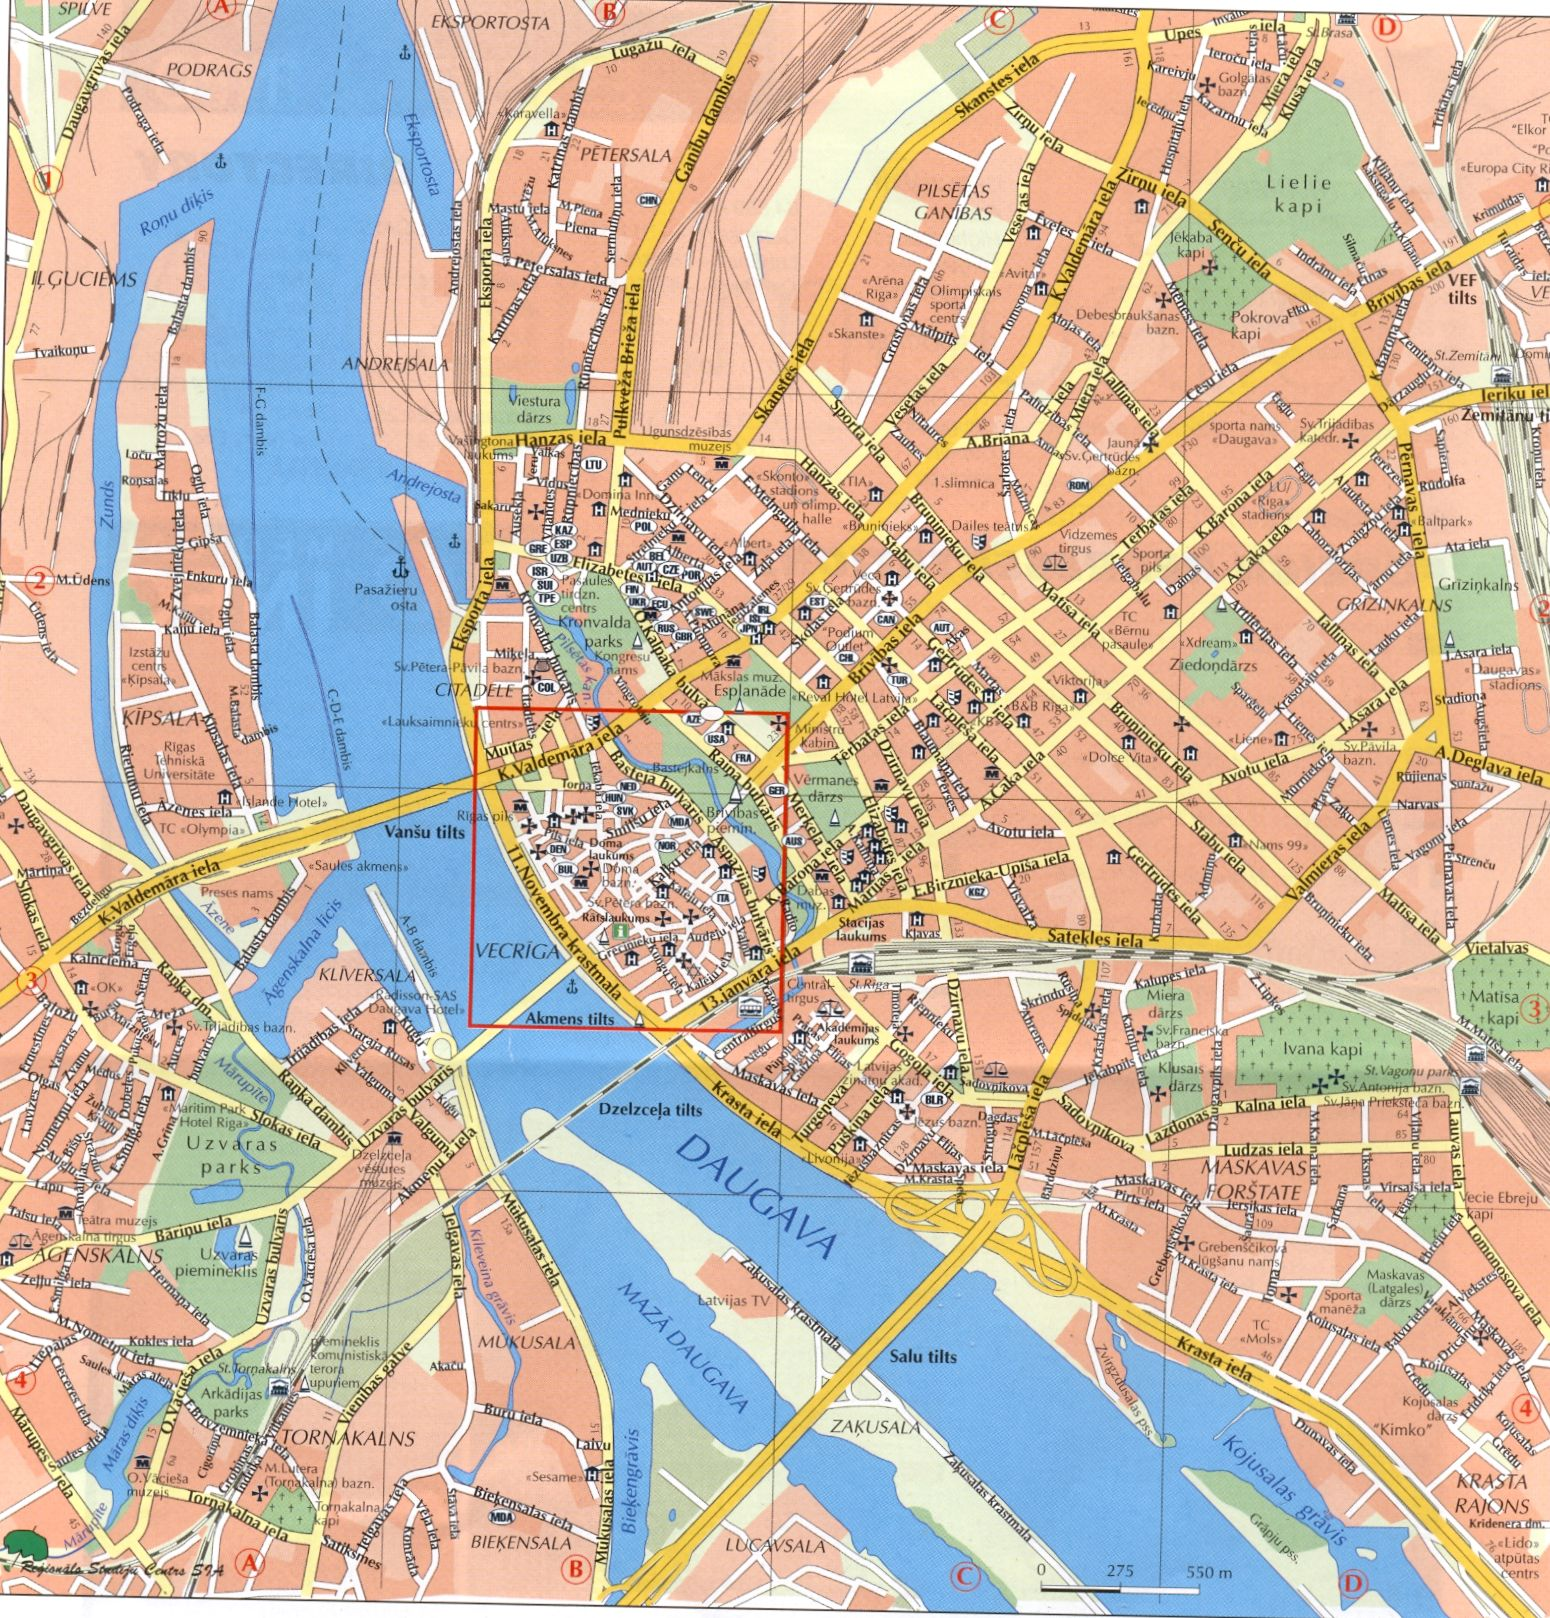 Maps Of Latvia And The Capital City Riga In The Baltics Region Of - Sweden map bd6